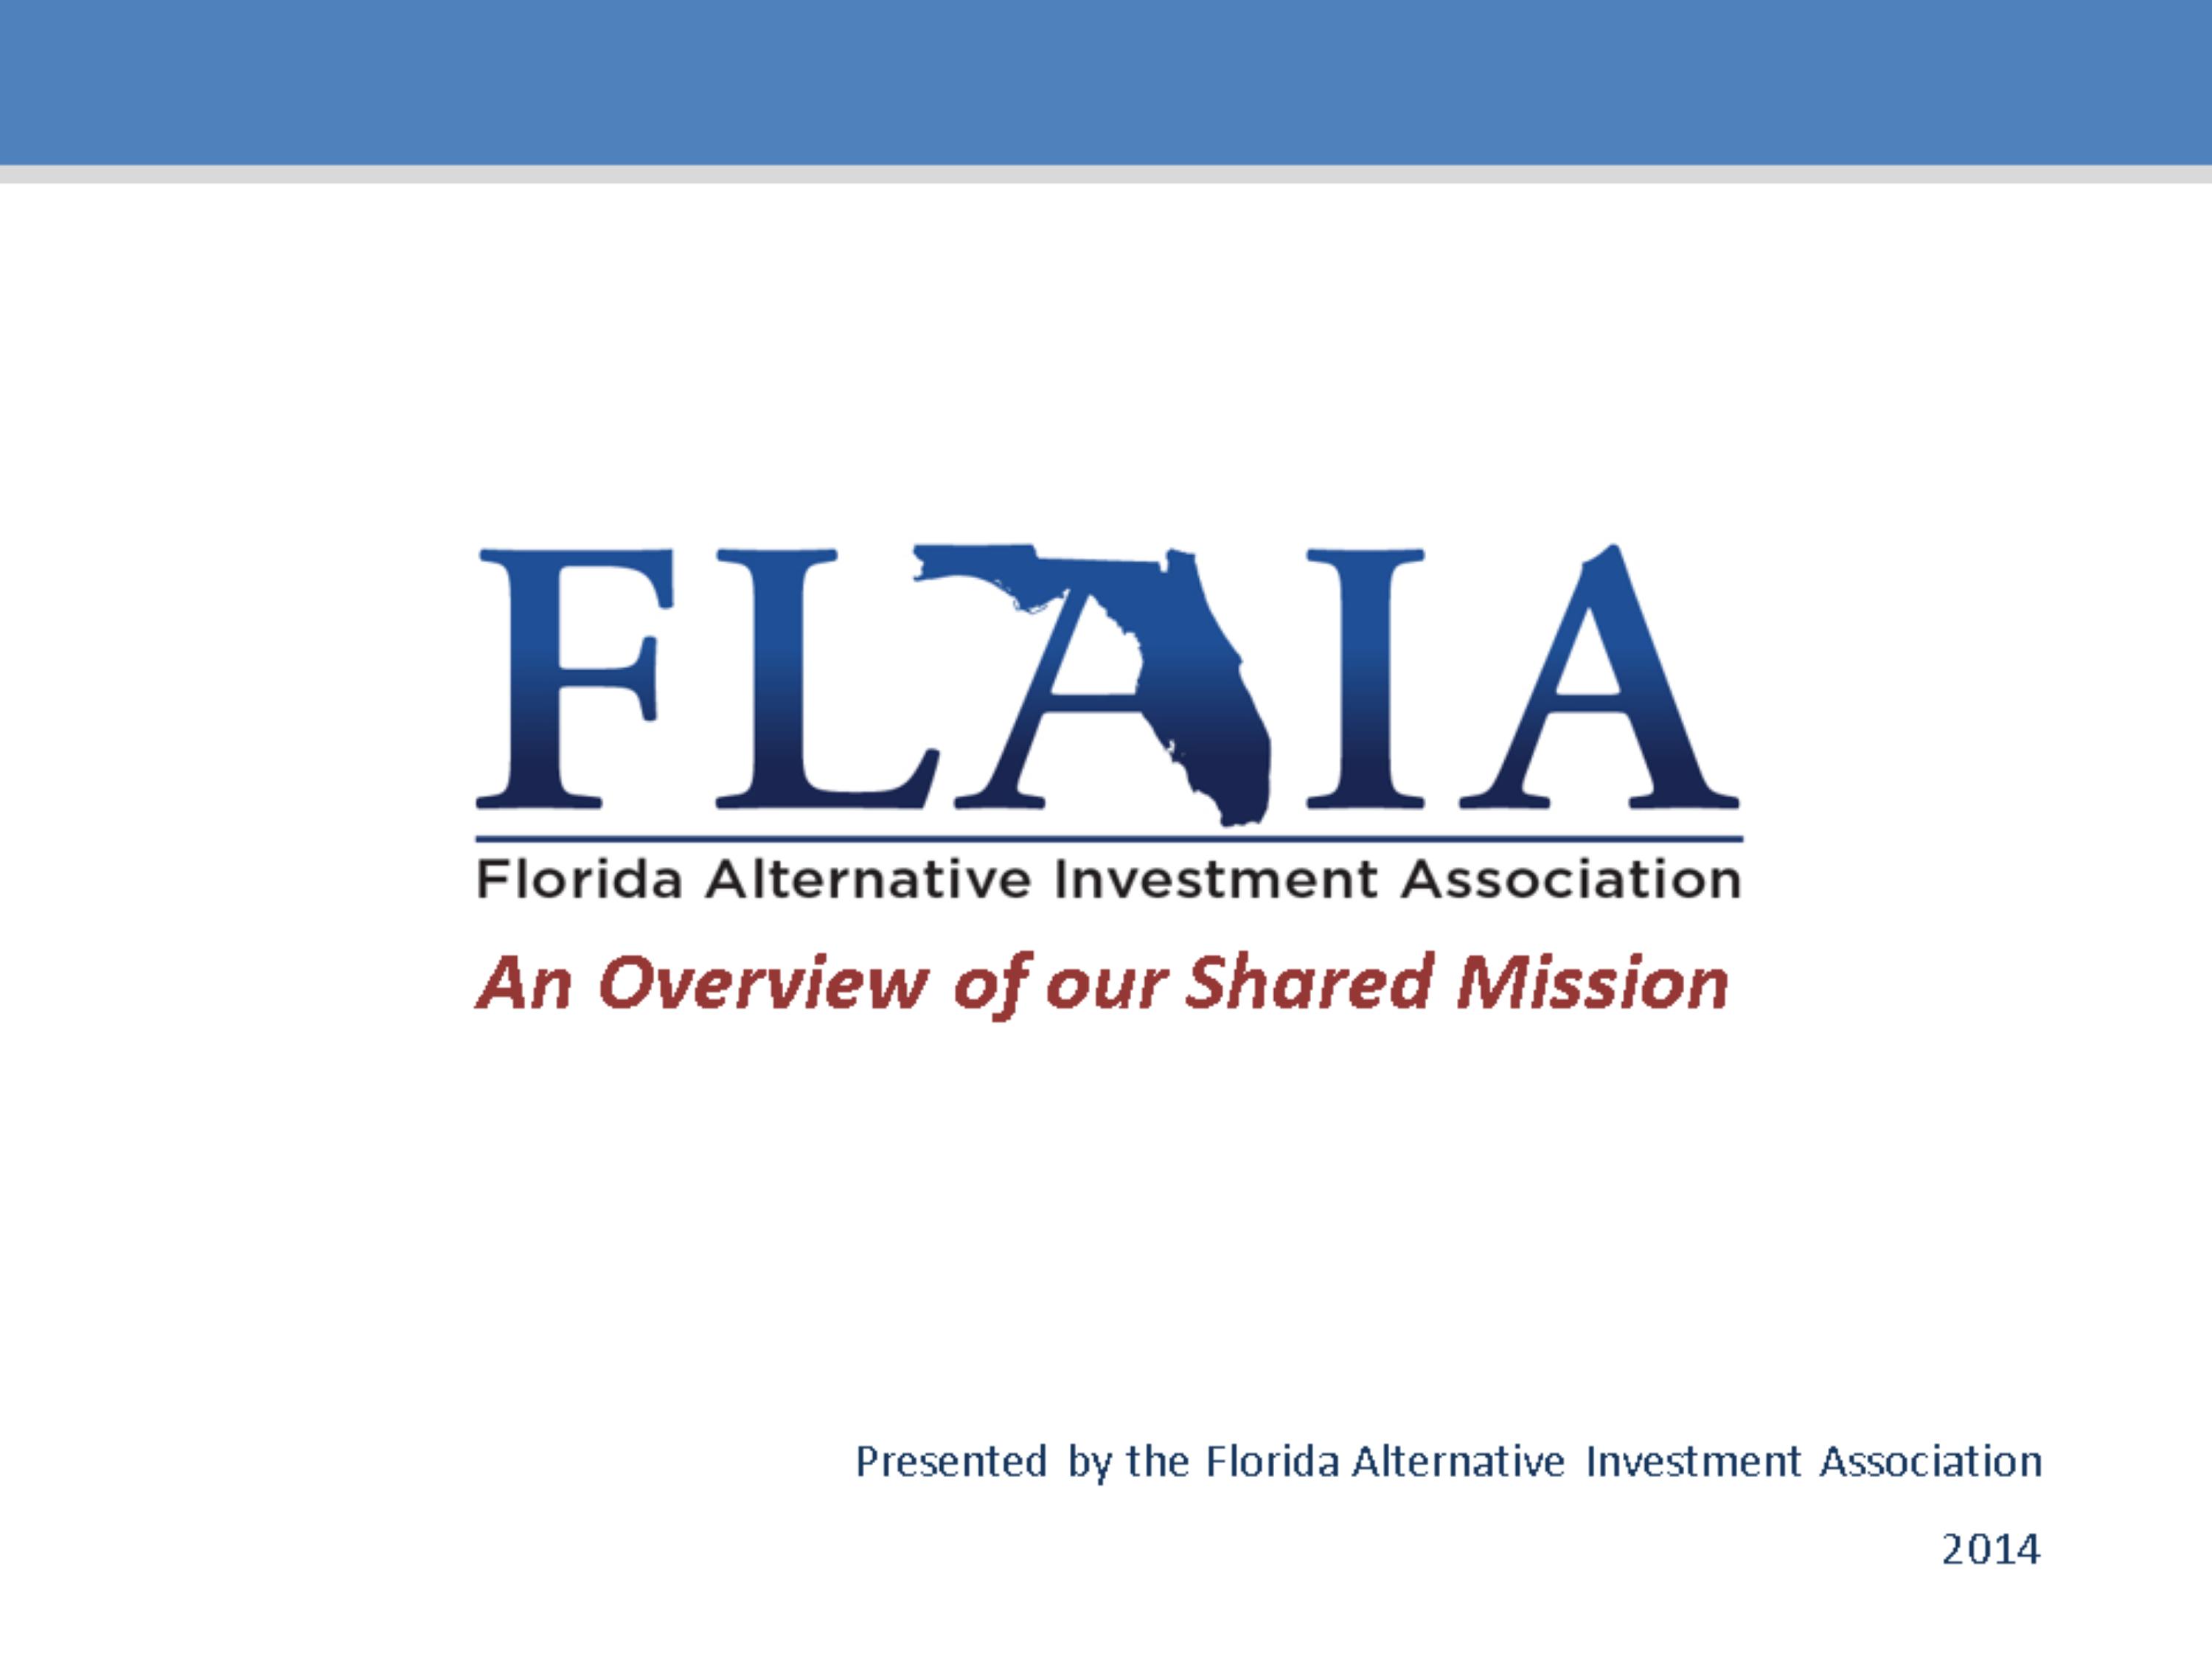 FLAIA Mission and Vision  Final 2014.pptx